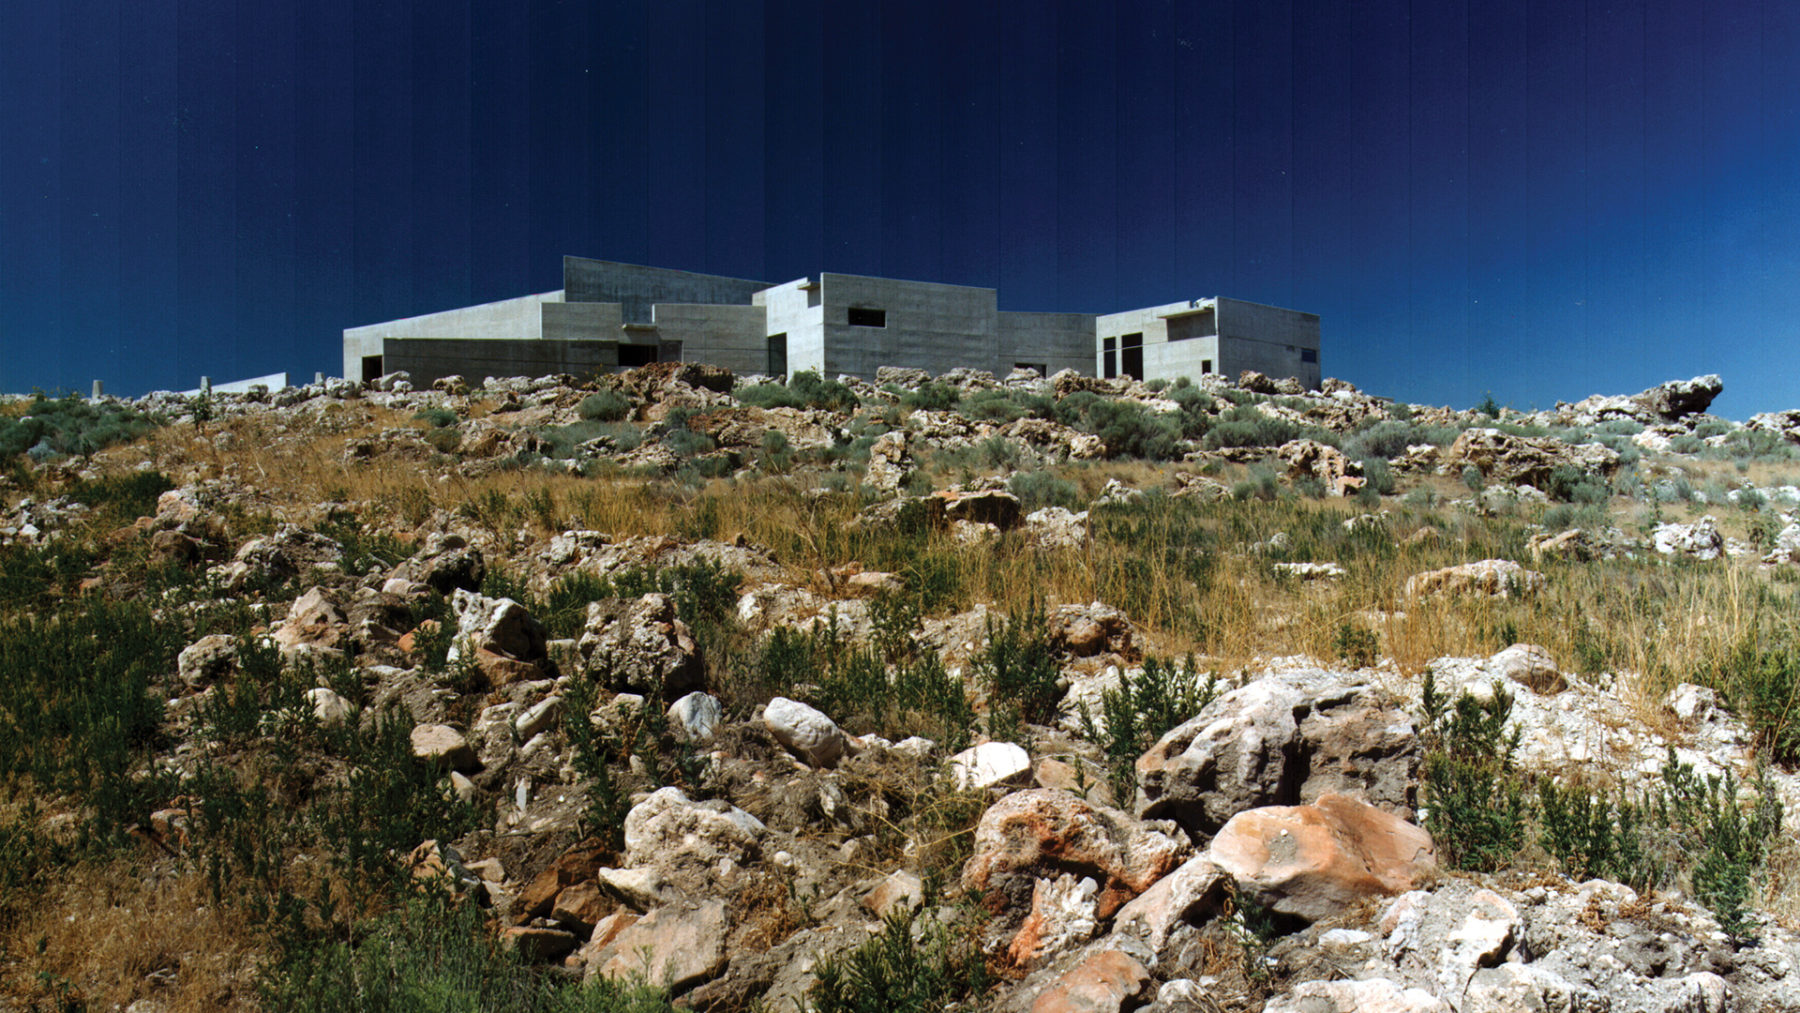 Antelope Island Visitor Center